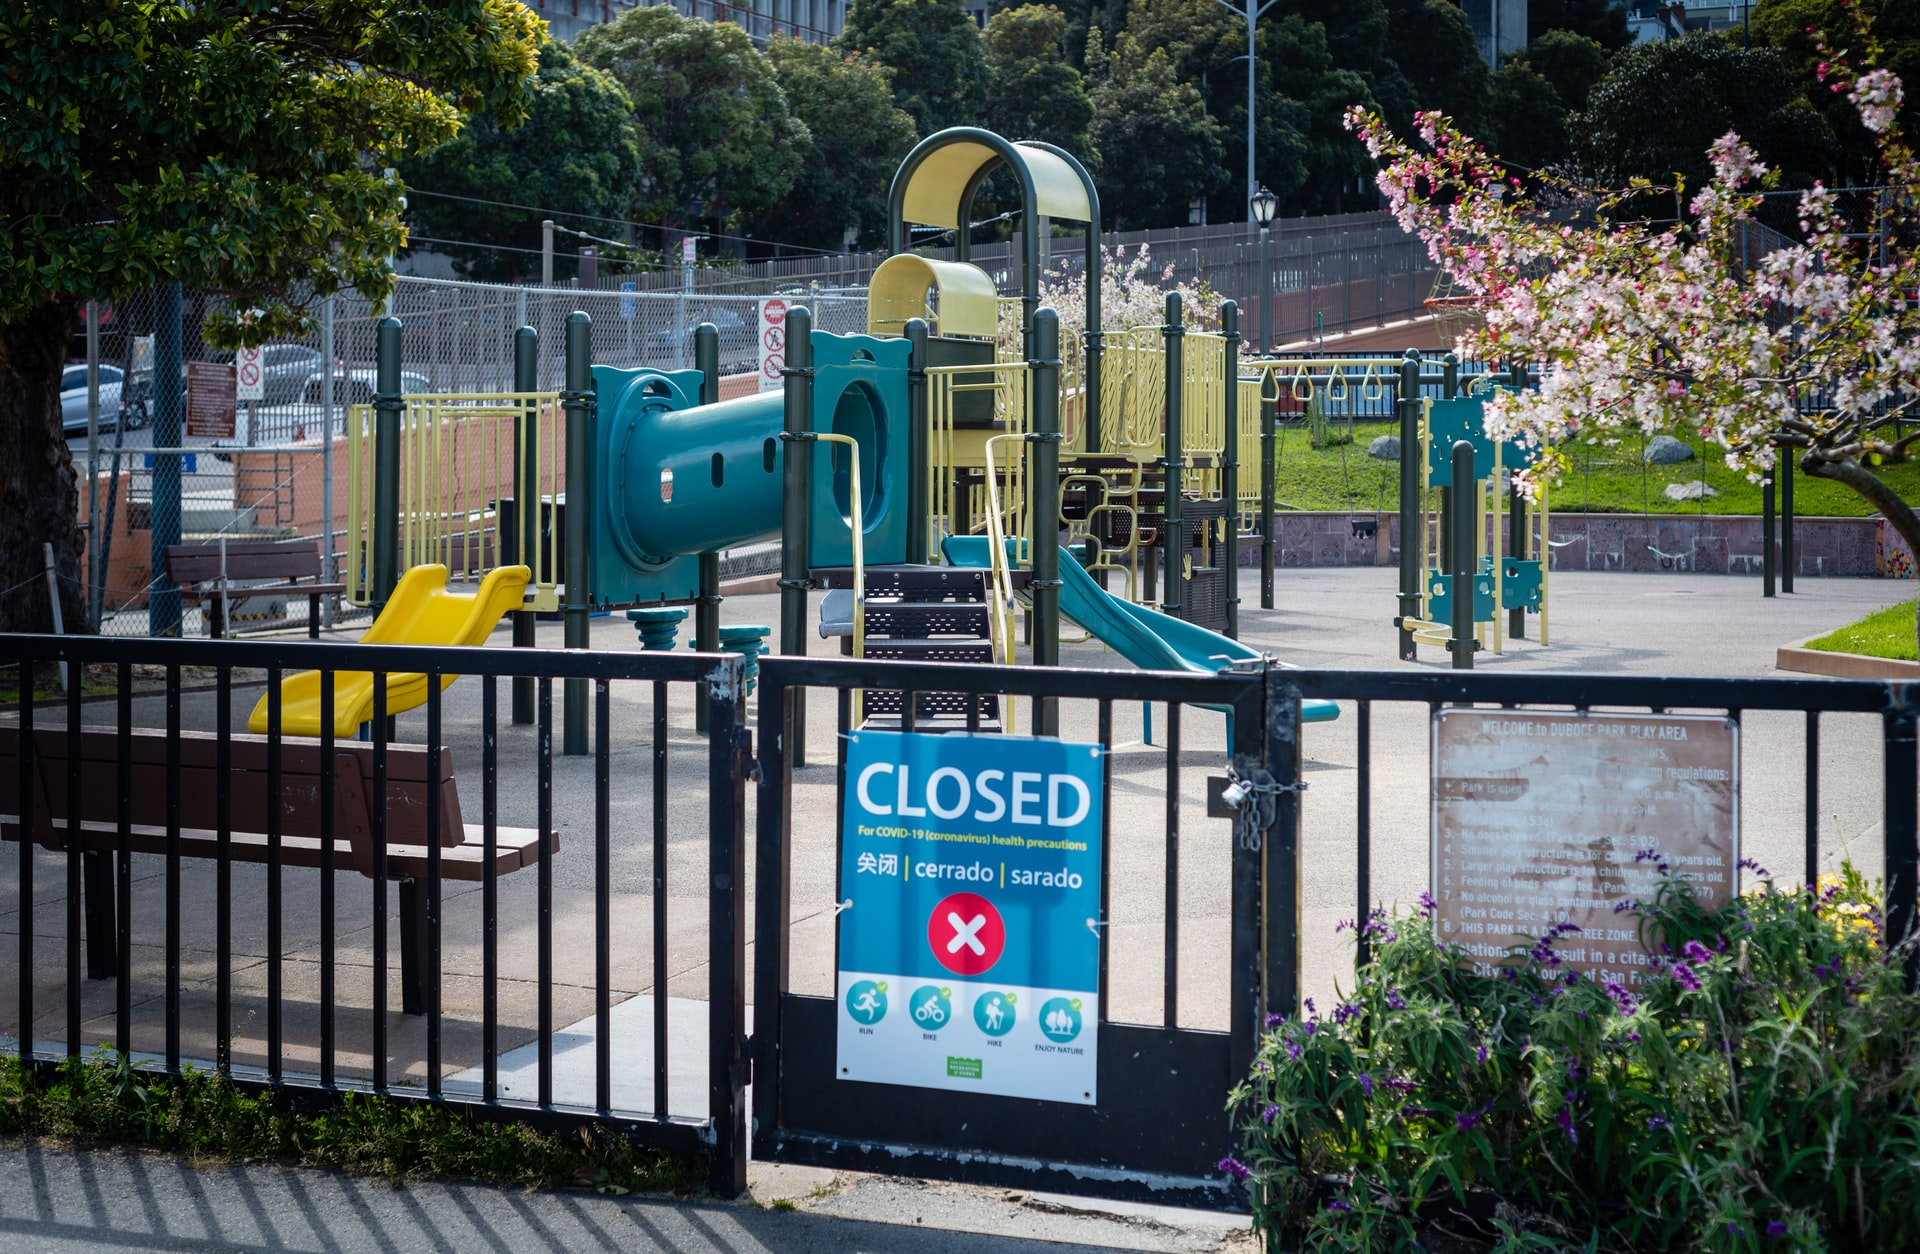 Shelter in Place - Playground Closed